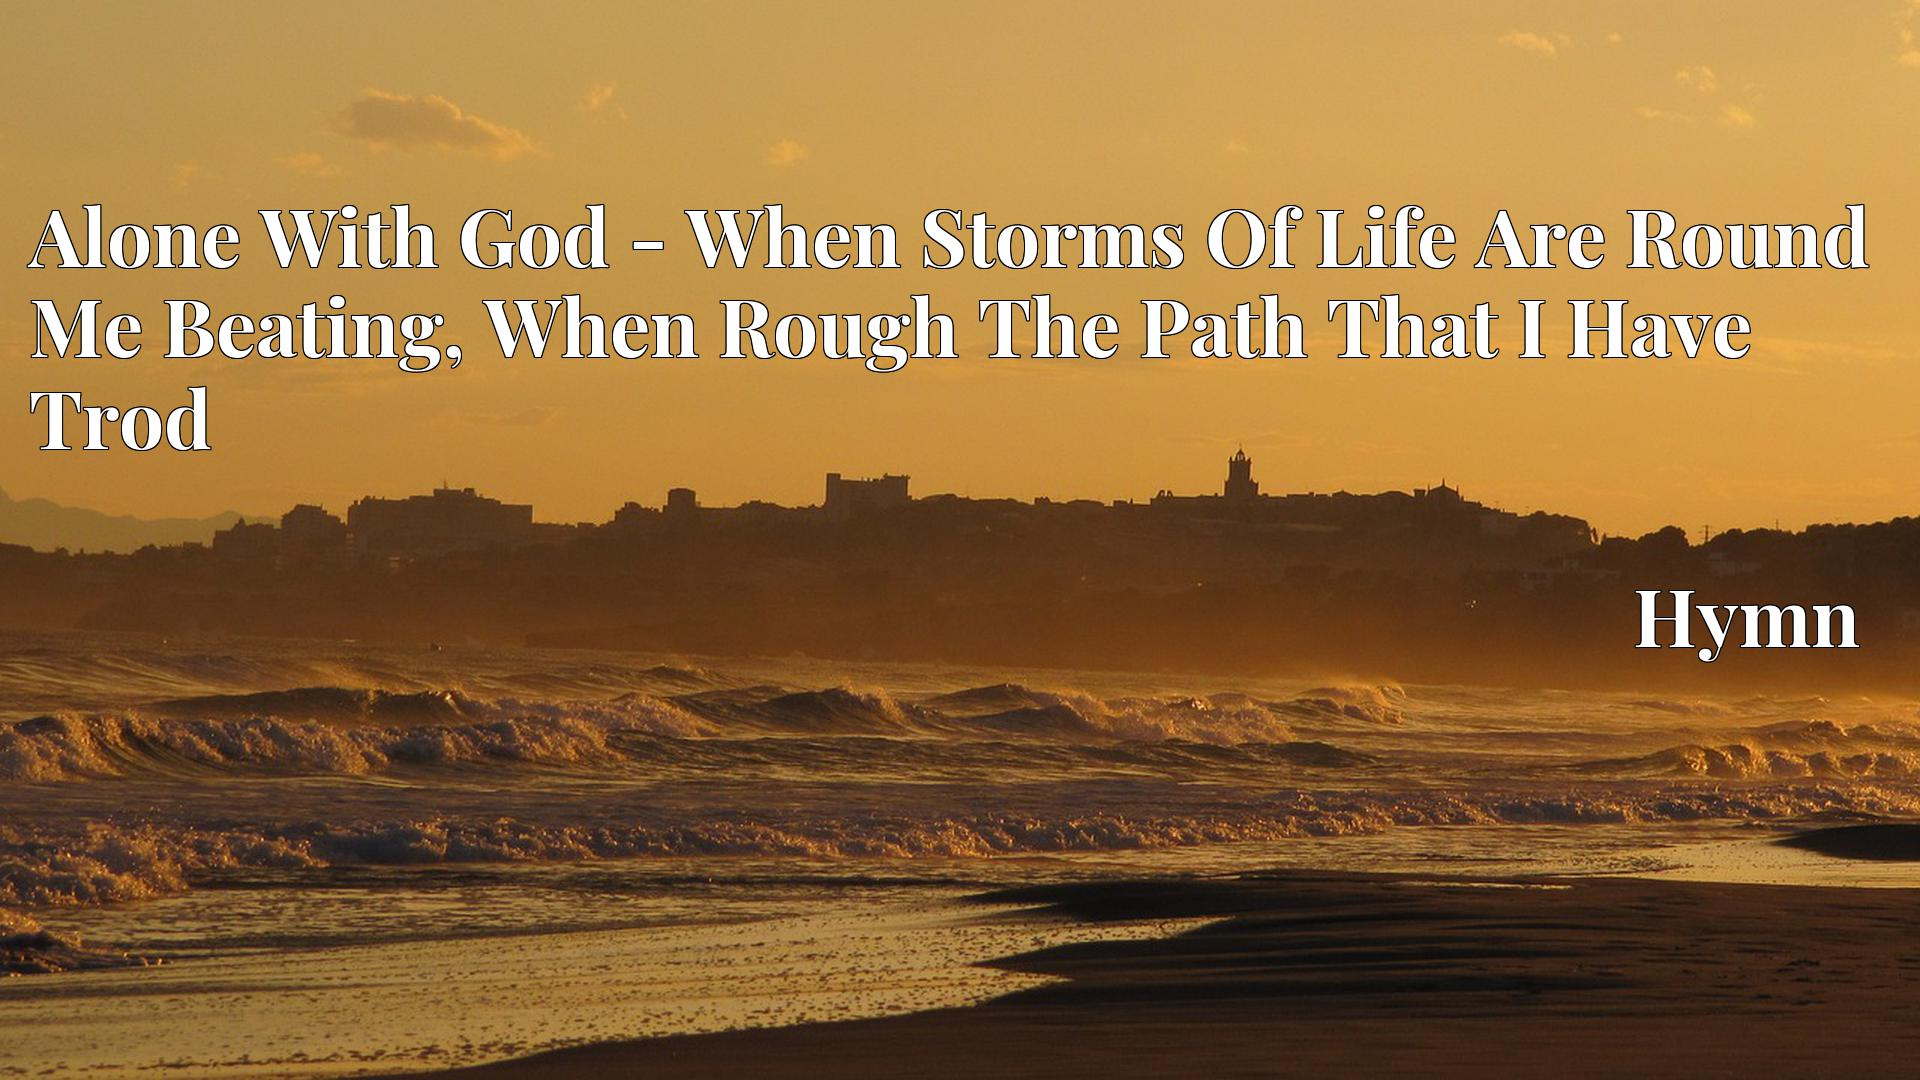 Alone With God - When Storms Of Life Are Round Me Beating, When Rough The Path That I Have Trod - Hymn